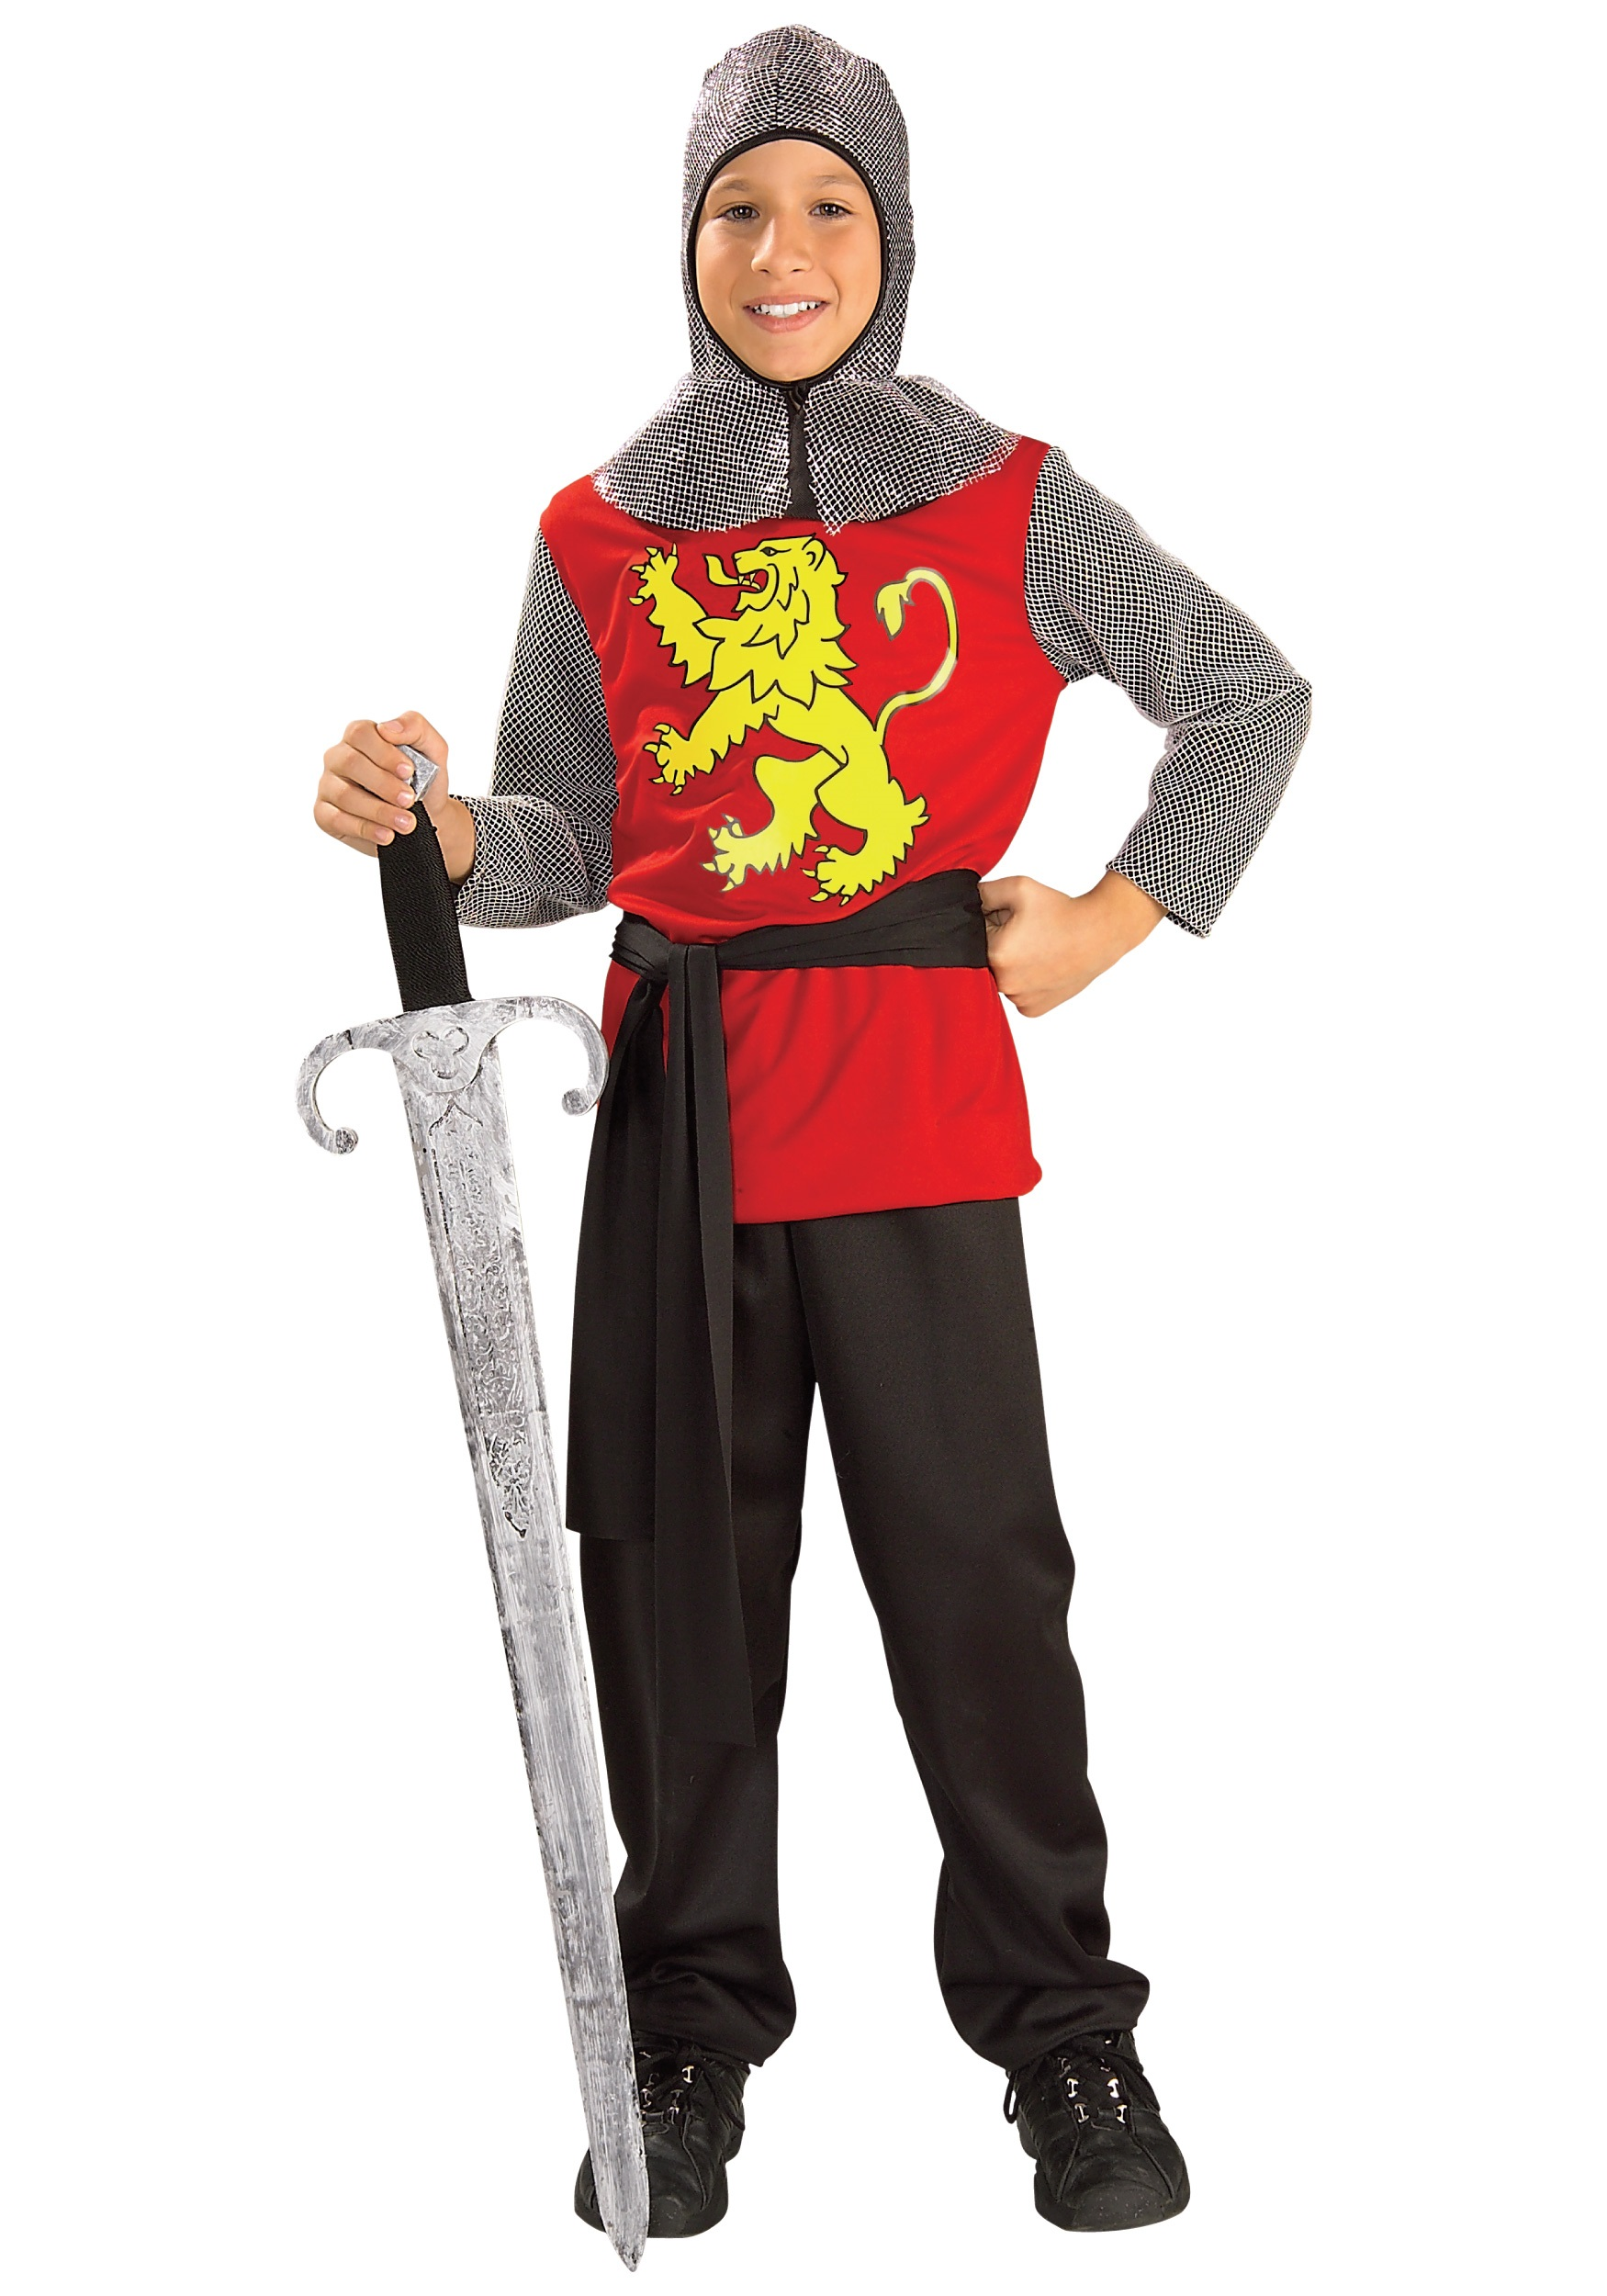 Medieval Knight Child Boys Costume Red interlock tunic has silver metallic mesh sleeves Yellow lion printed on the front Metallic mesh hood has cowl collar Black interlock waist sash